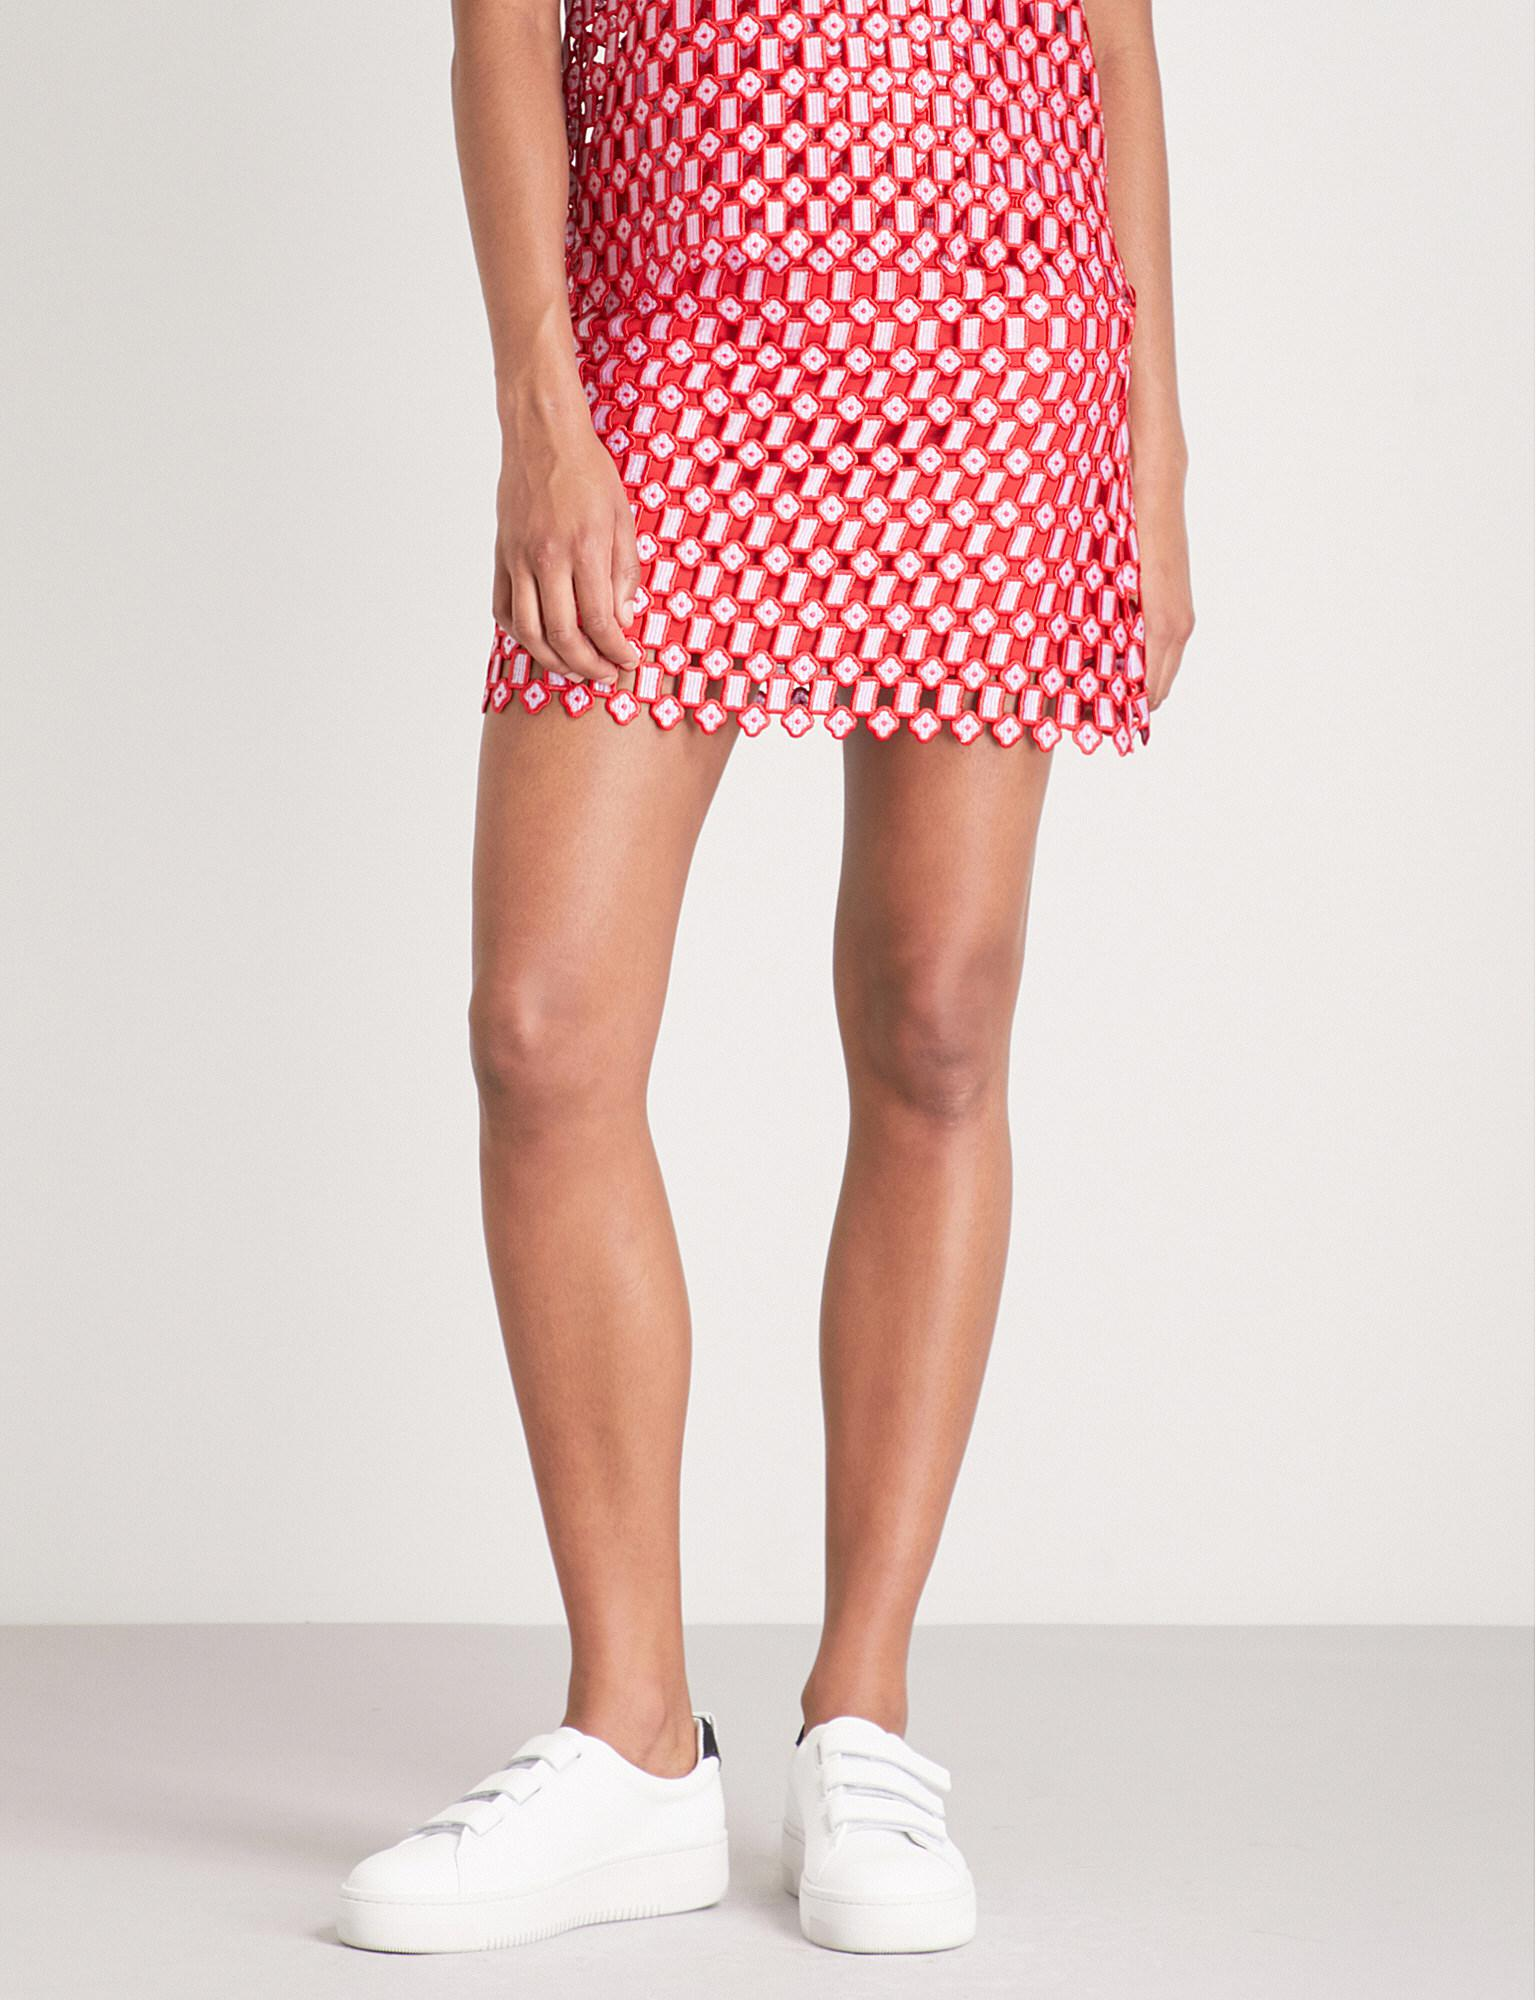 8f069f705 Sandro Embroidered Lace Mini Skirt in Red - Lyst